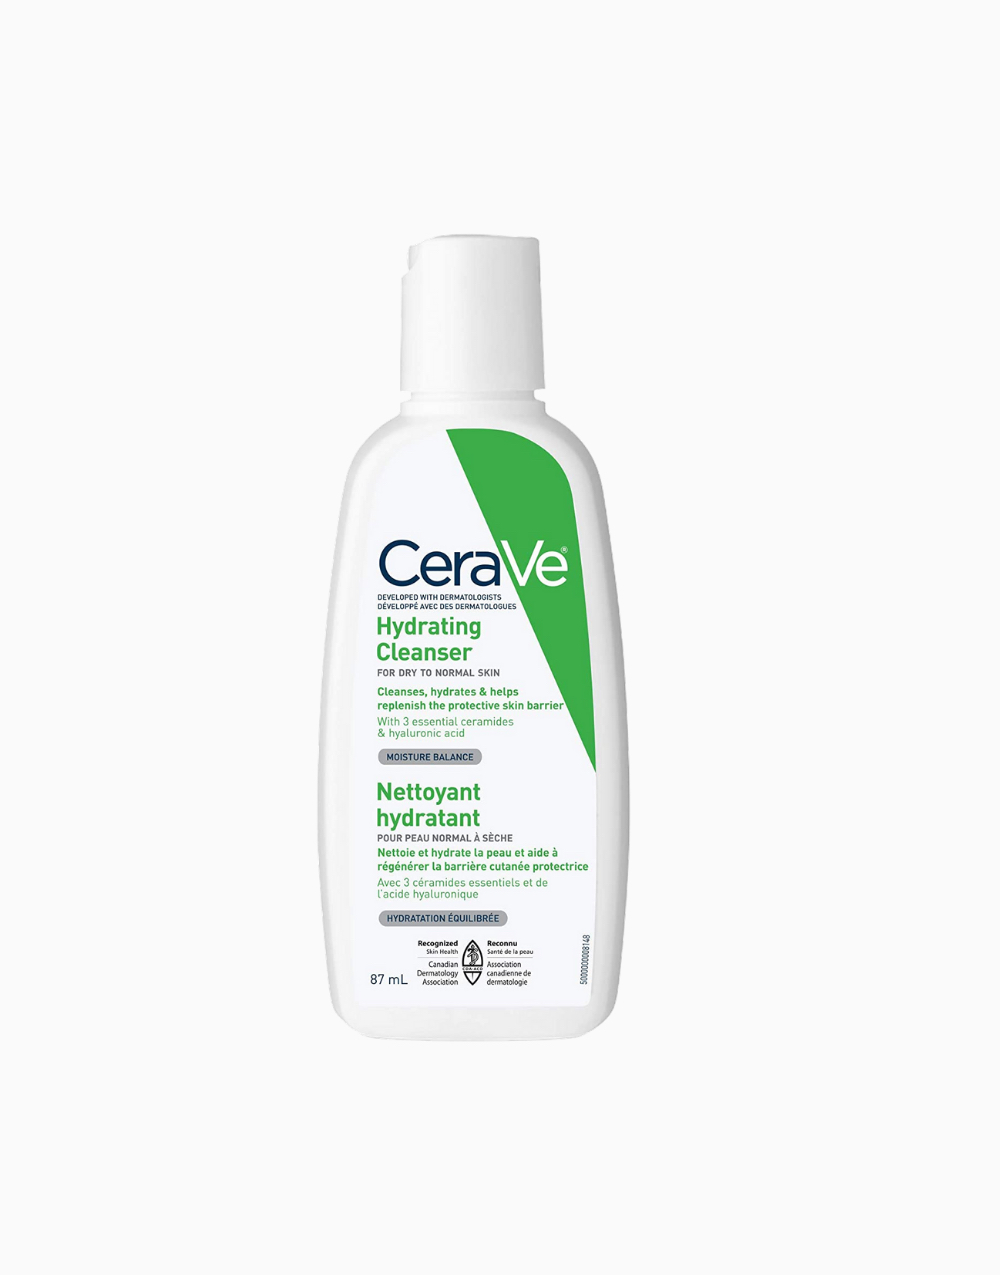 Hydrating Facial Cleanser For Normal to Dry Skin (87ml) by CeraVe